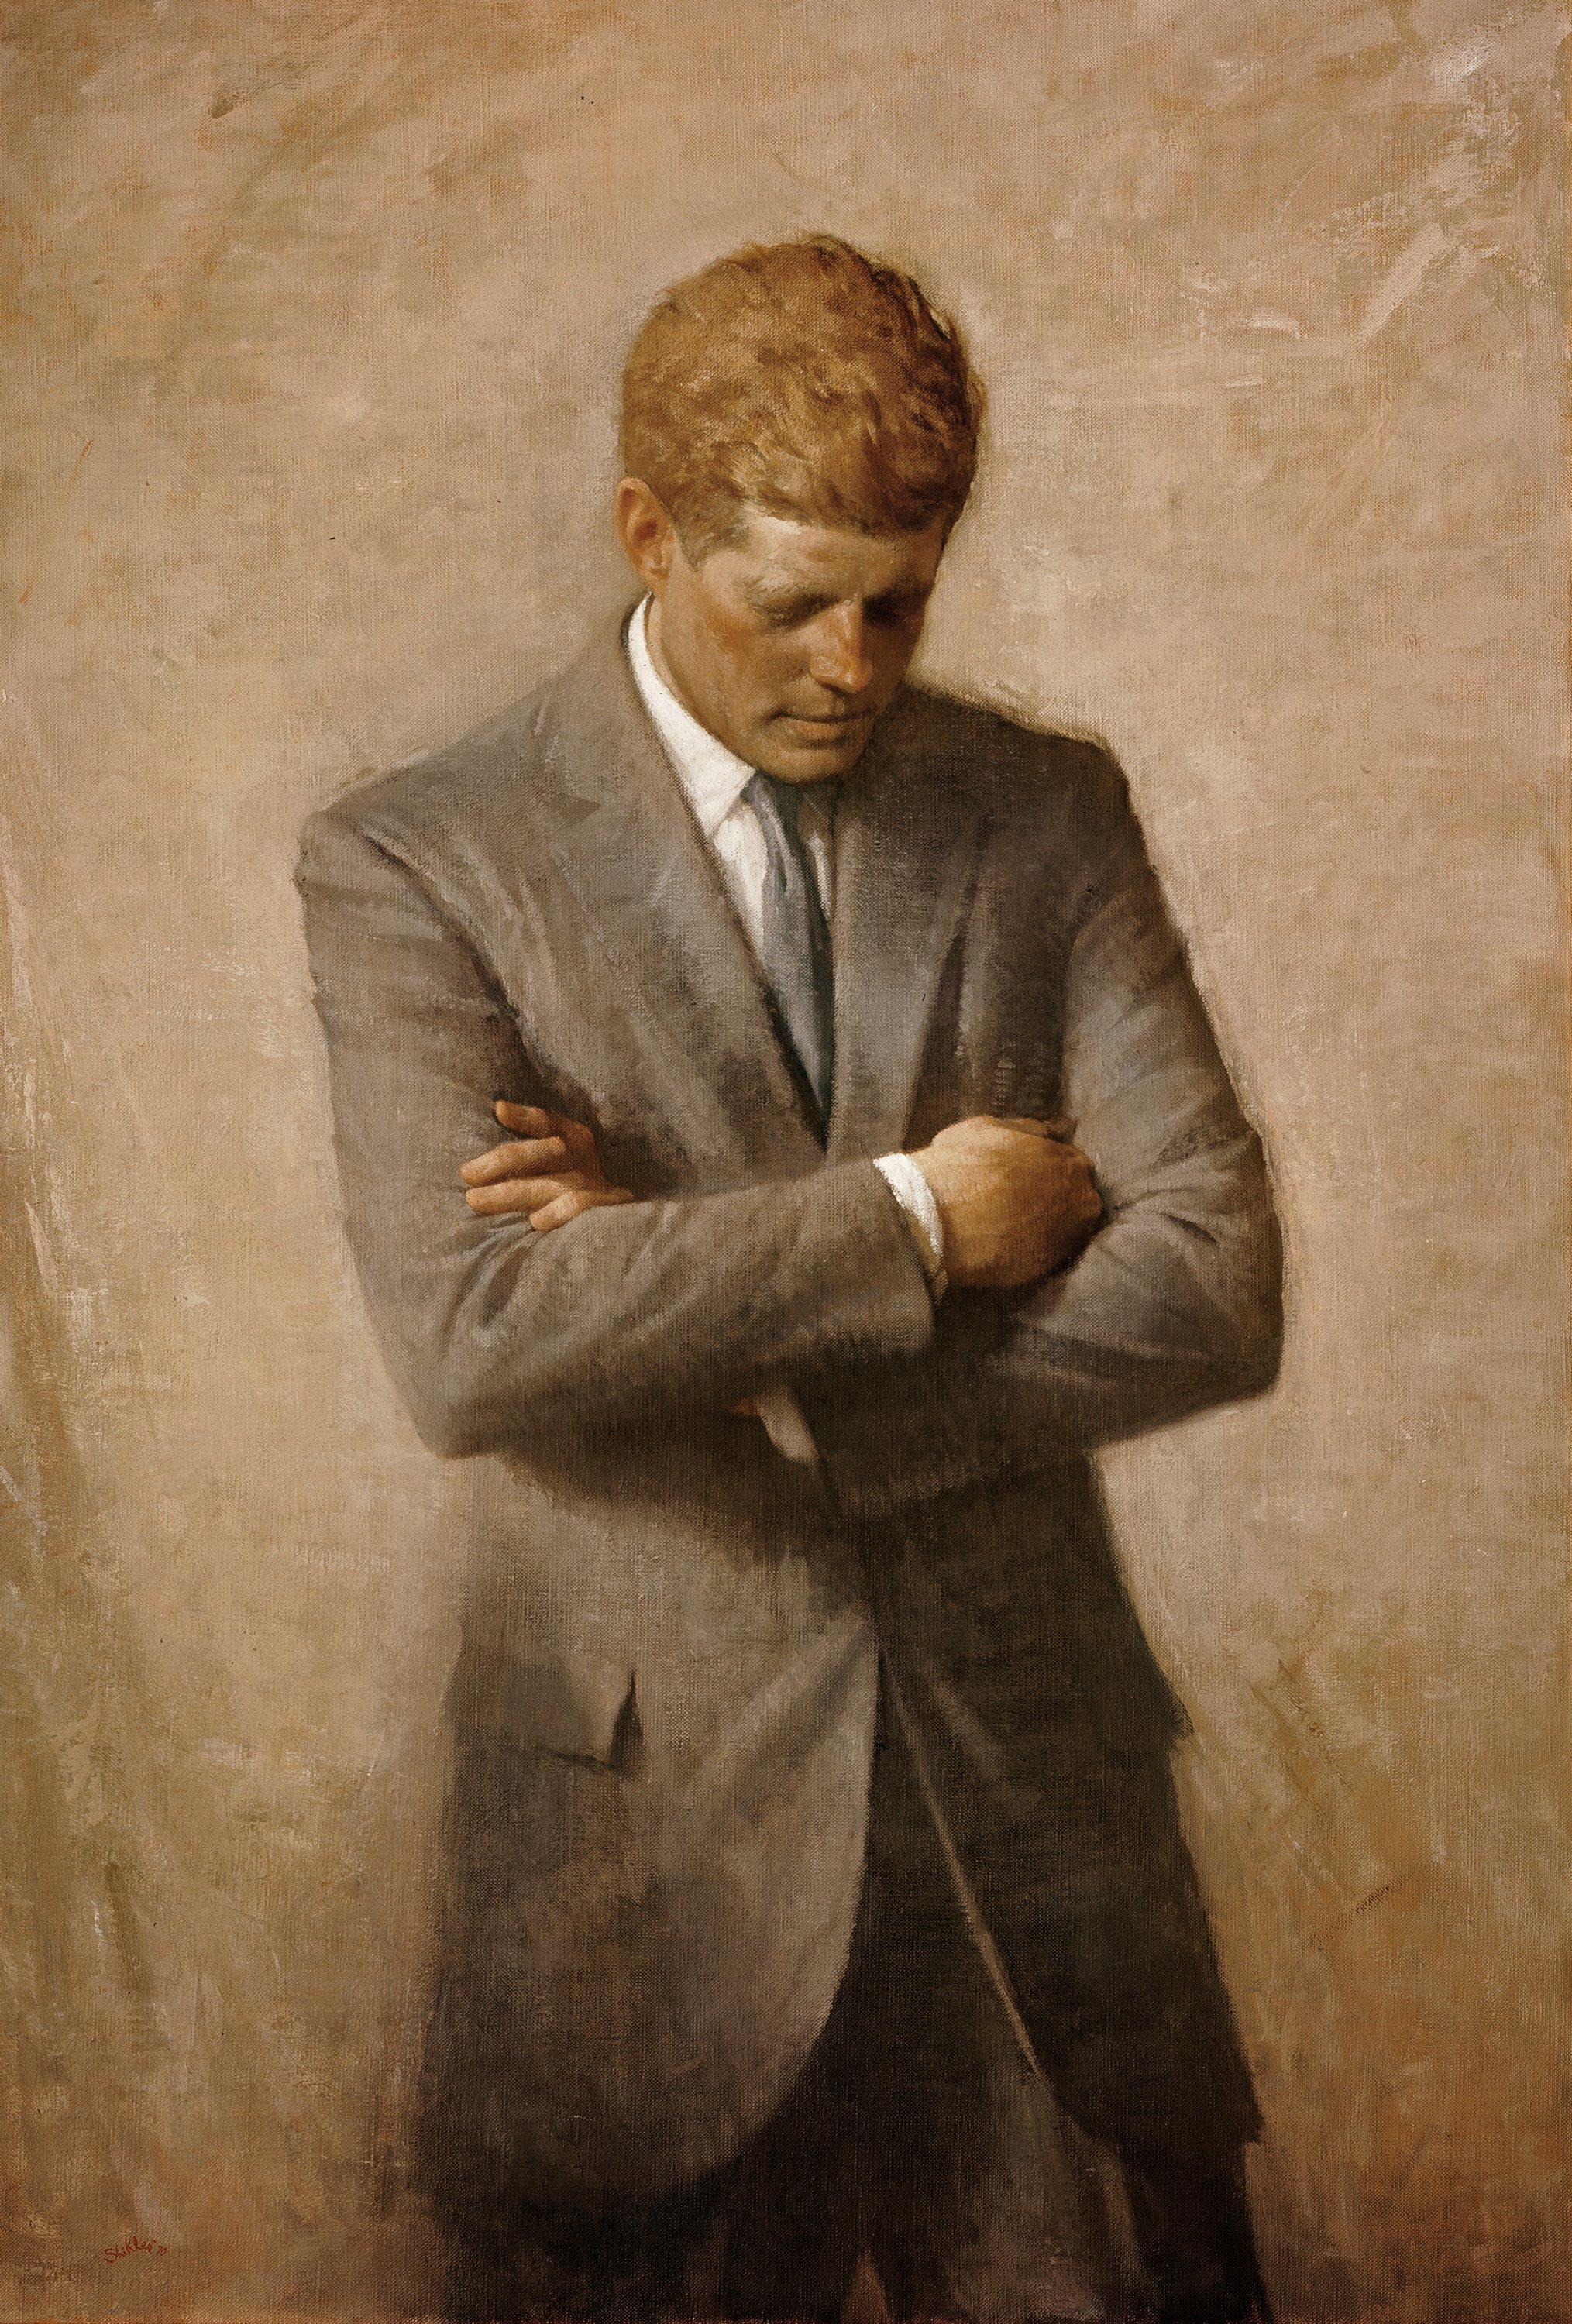 Portrait of John F. Kennedy  by Aaron Shikler, 1970